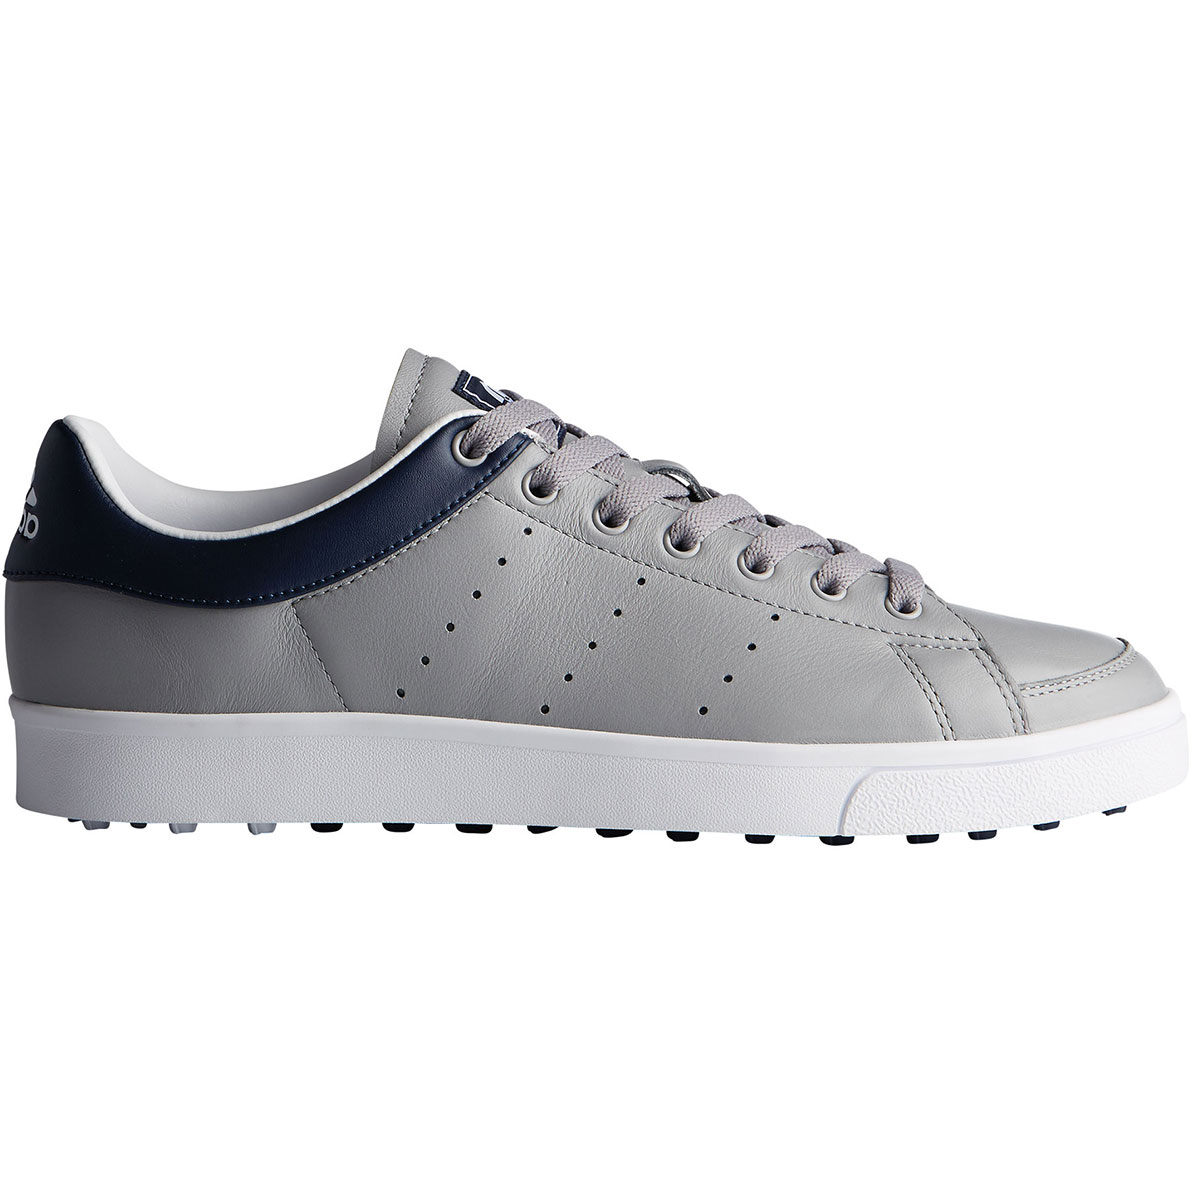 Chaussures adidas Golf Adicross Classic Leather | Online Golf